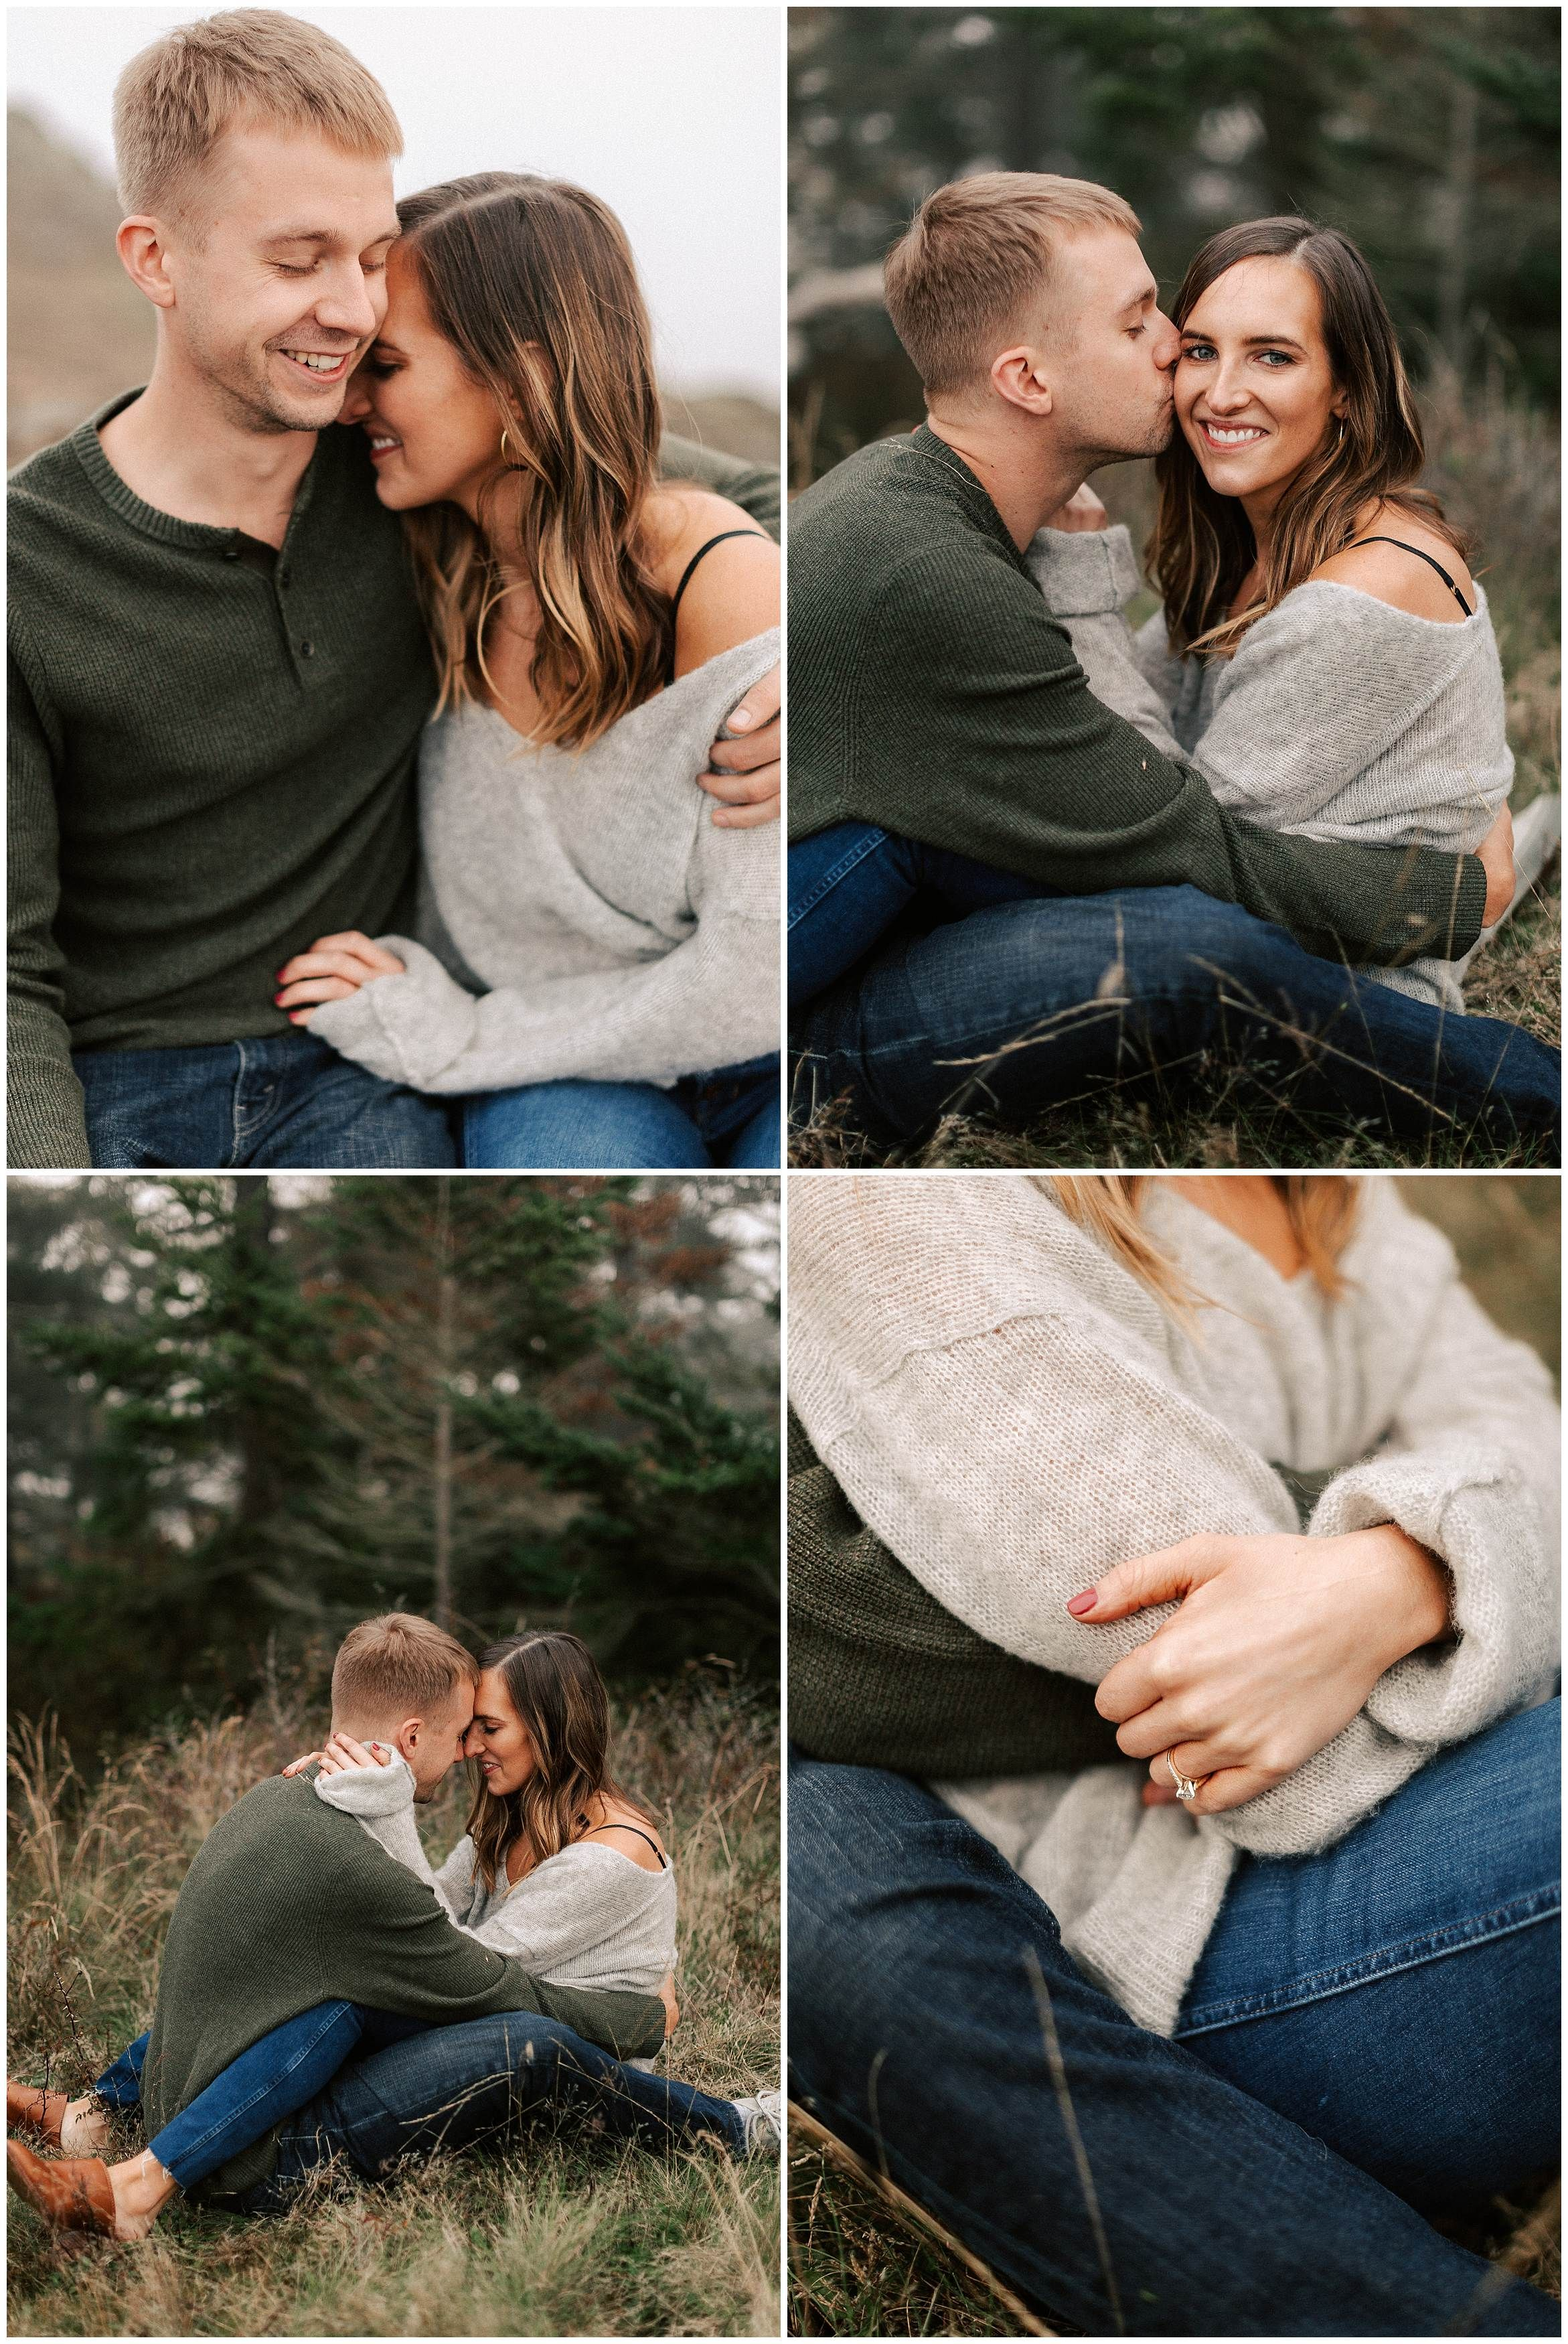 Outdoor Engagement Photos Outfit Ideas In The Pnw By Kyle Goldie Of Luma We Engagement Photo Outfits Spring Engagement Photos Fall Engagement Pictures Outfit